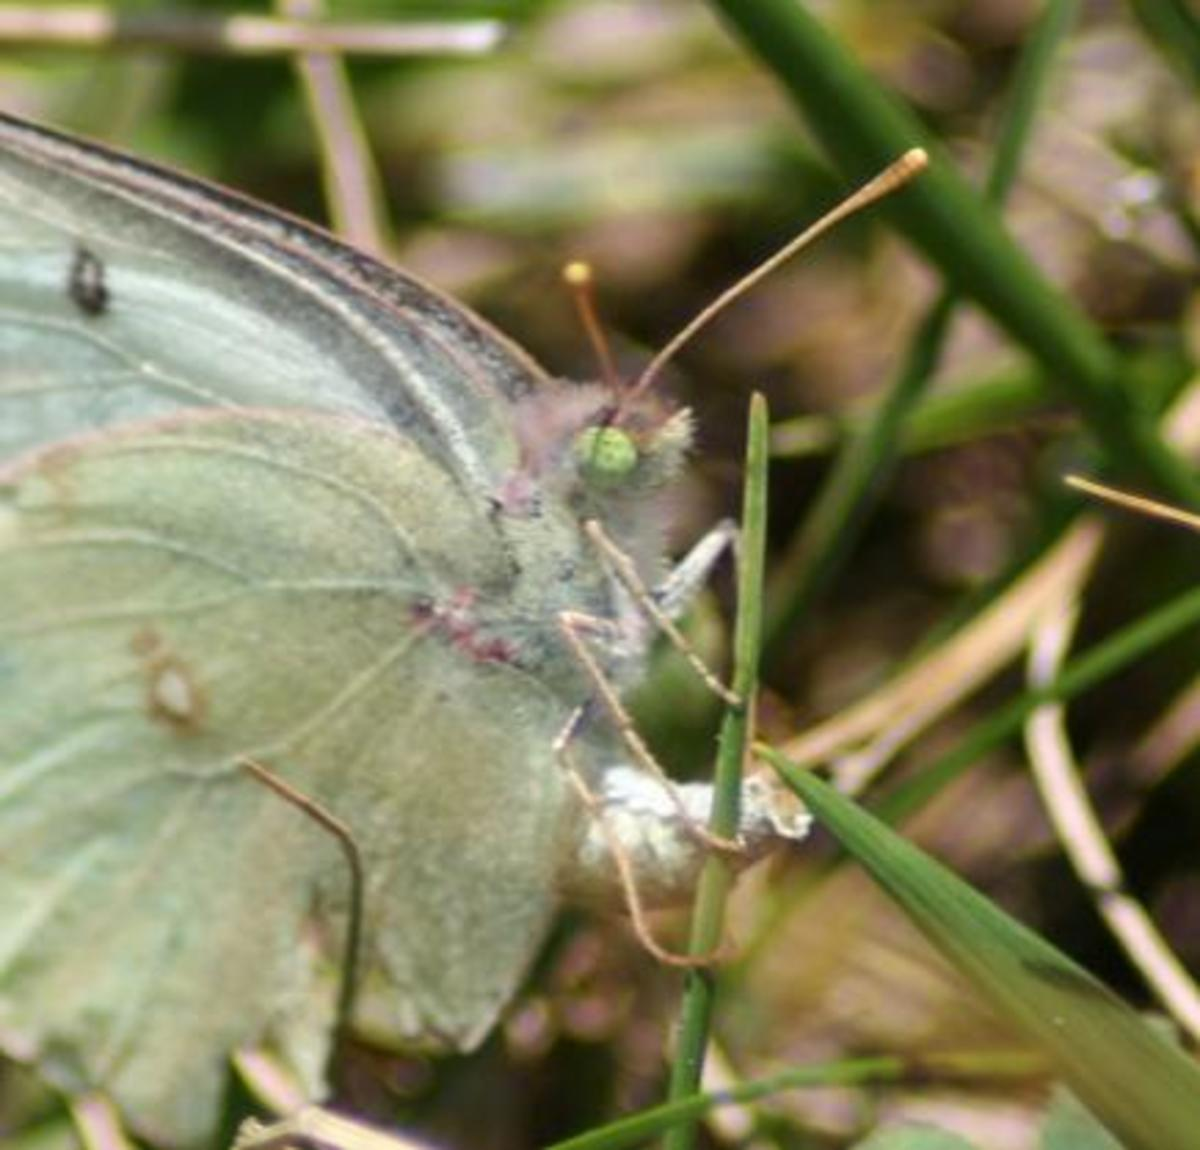 A female orange sulphur butterfly laying an egg.  An excellent capture by Megan McCarty.  Public domain.